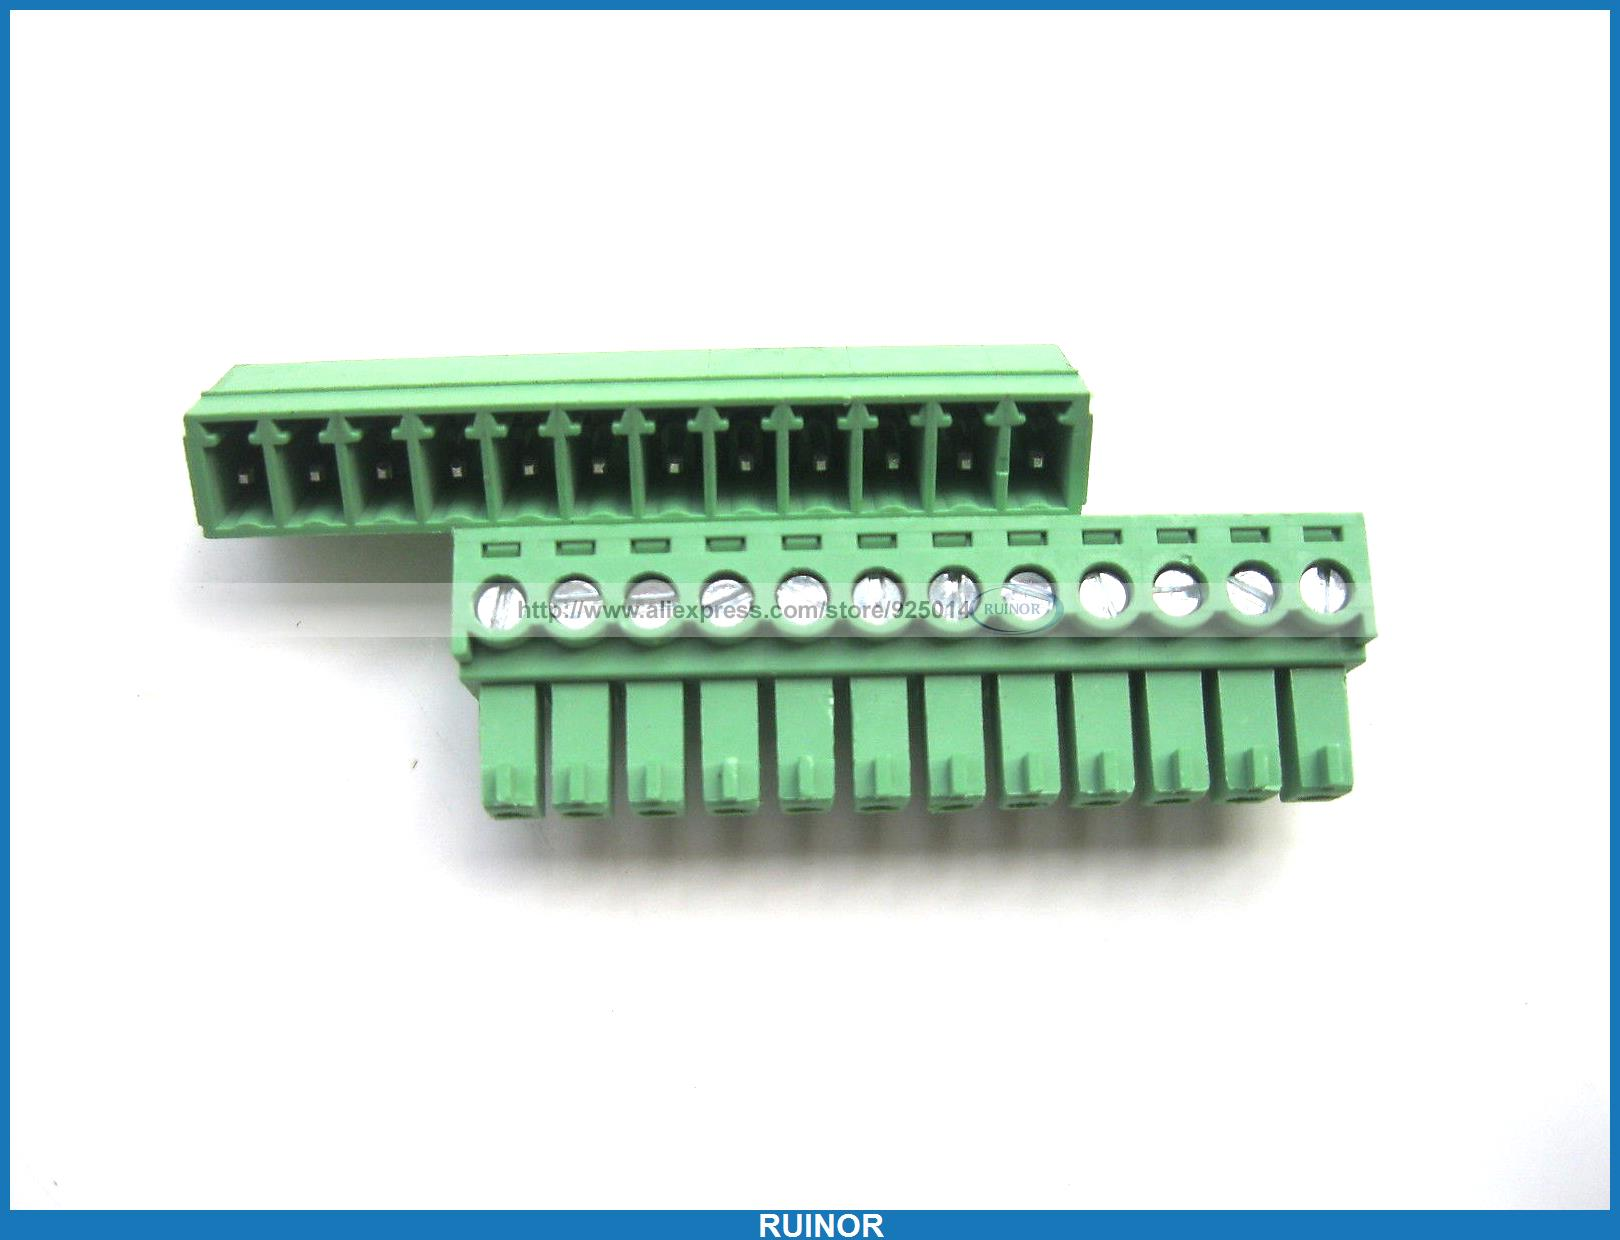 30 Pcs Screw Terminal Block Connector 3 81mm 12 Pin Green Pluggable Type 30 pcs screw terminal block connector 3 81mm 12 pin green pluggable type